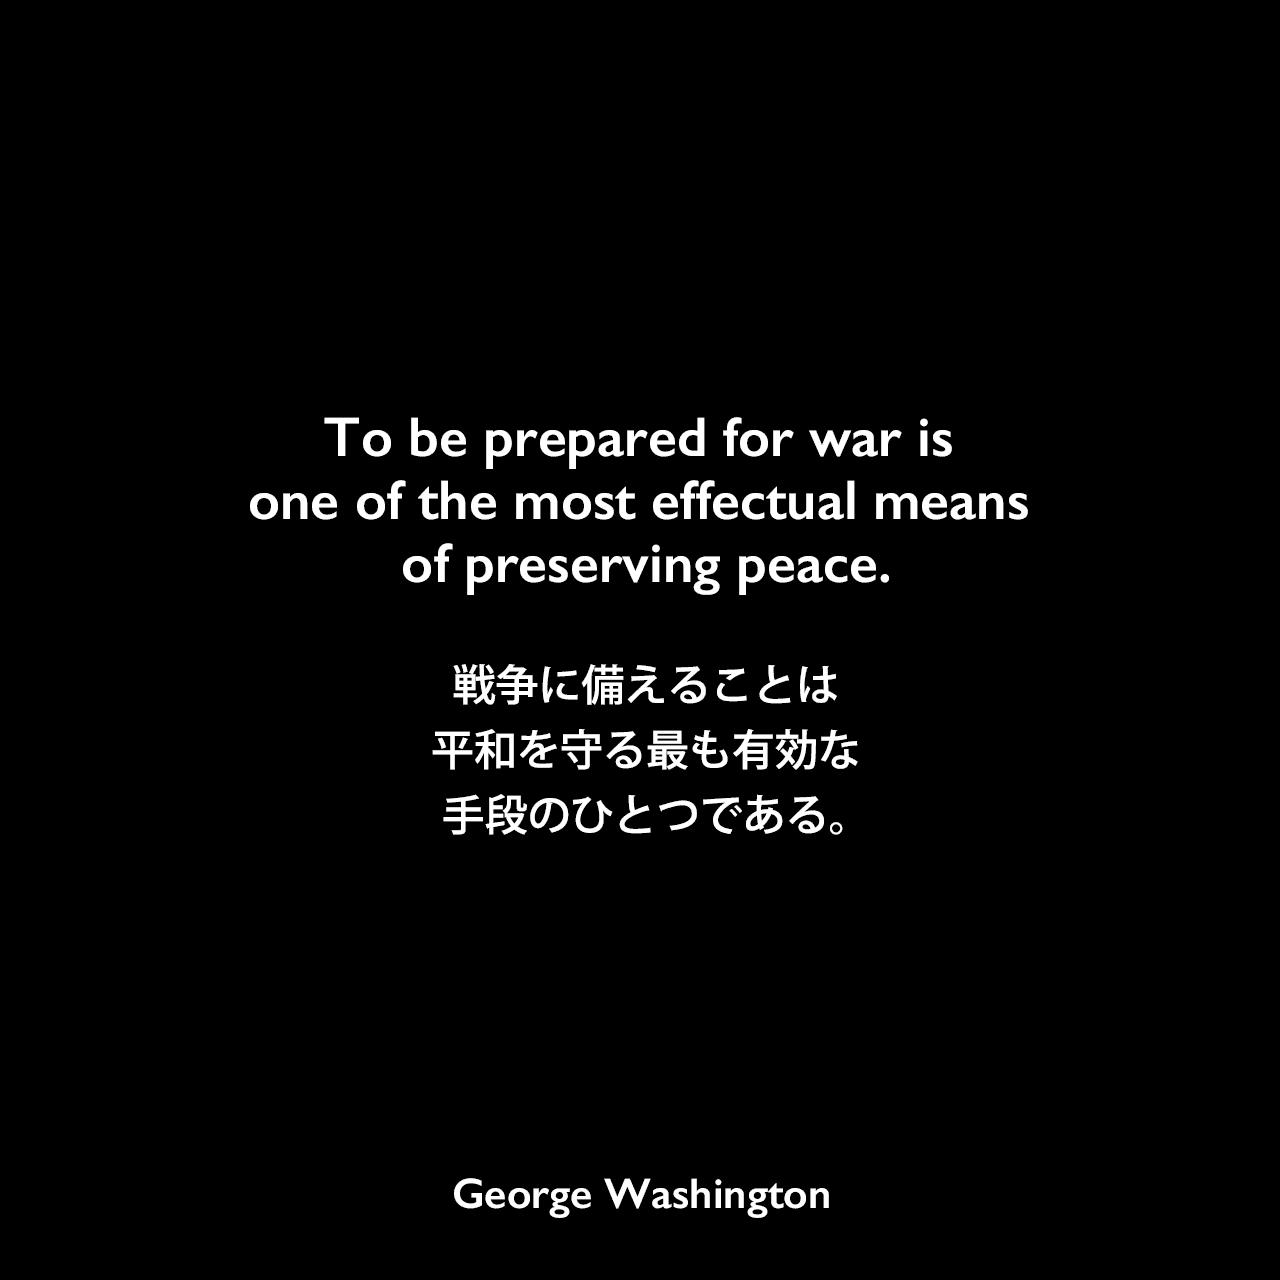 To be prepared for war is one of the most effectual means of preserving peace.戦争に備えることは、平和を守る最も有効な手段のひとつである。 - 議会への年頭教書演説よりGeorge Washington